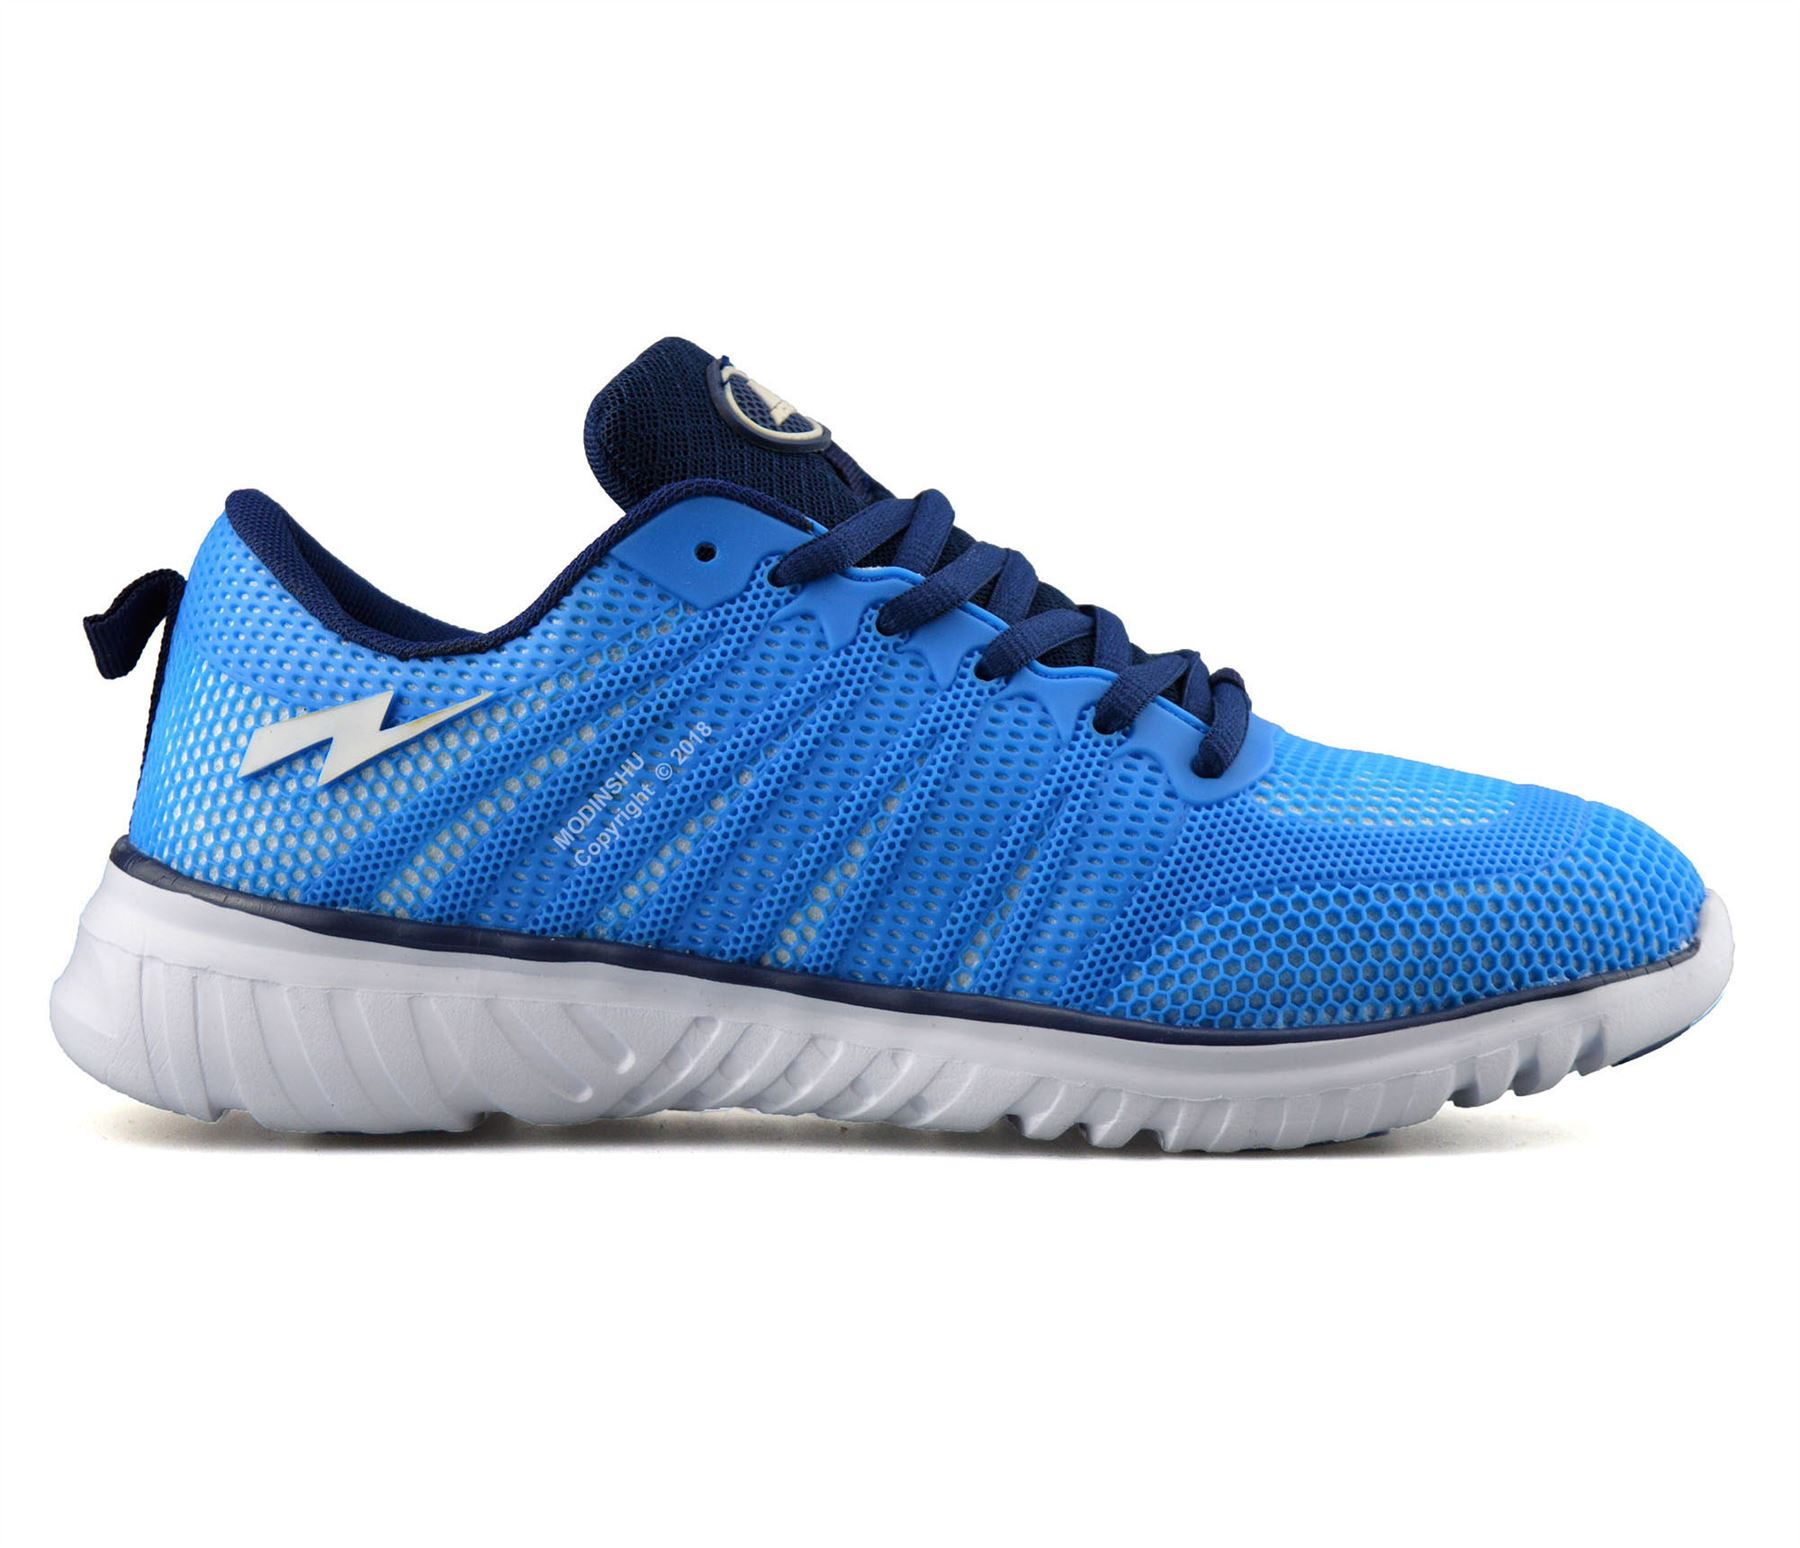 Mens-Casual-Running-Walking-Sports-Gym-Shock-Absorbing-Lace-Trainers-Shoes-Size thumbnail 15